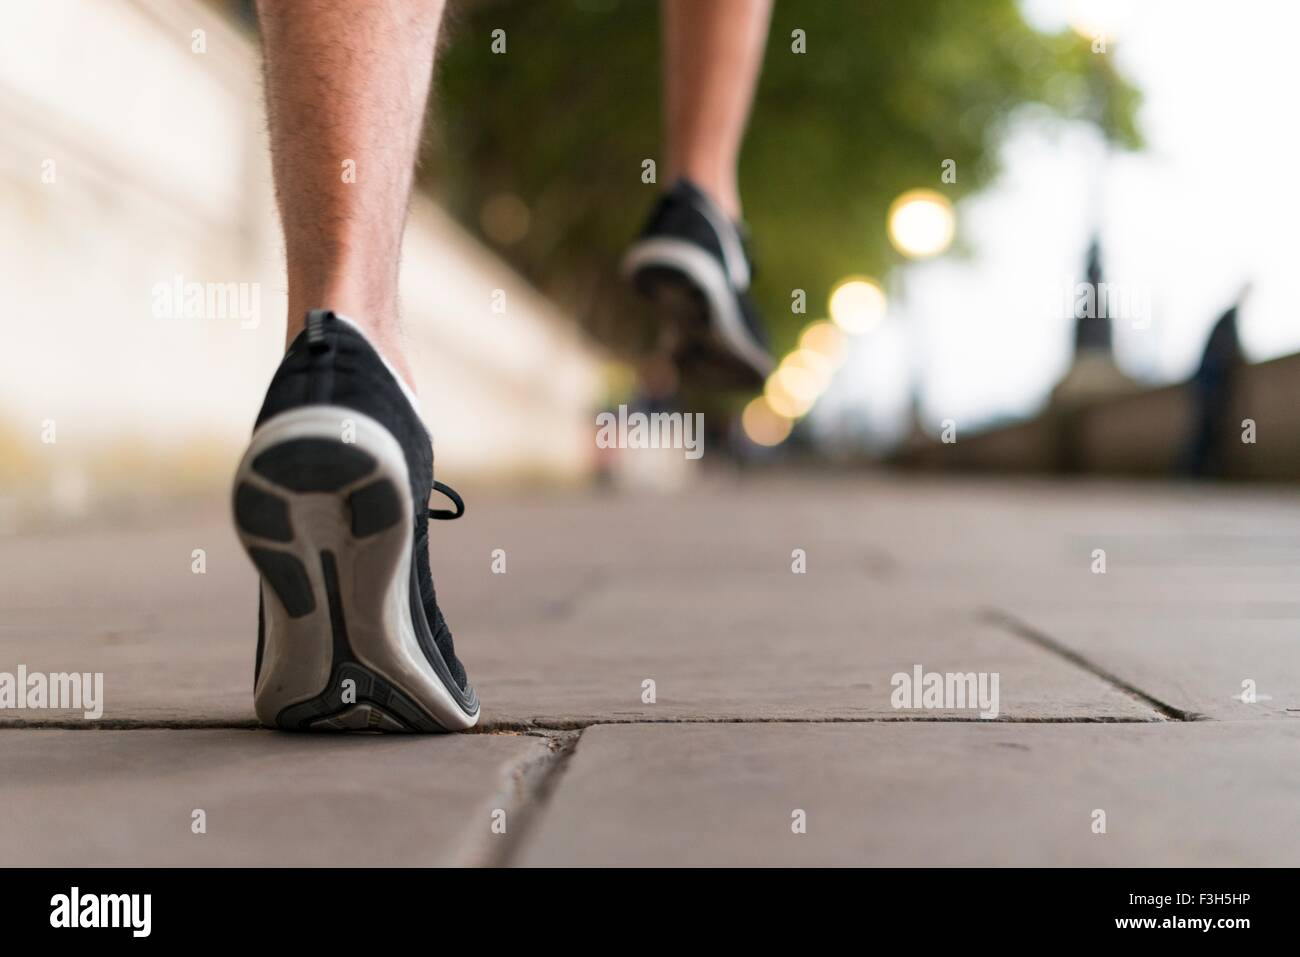 Young male runners wearing trainers running on sidewalk - Stock Image